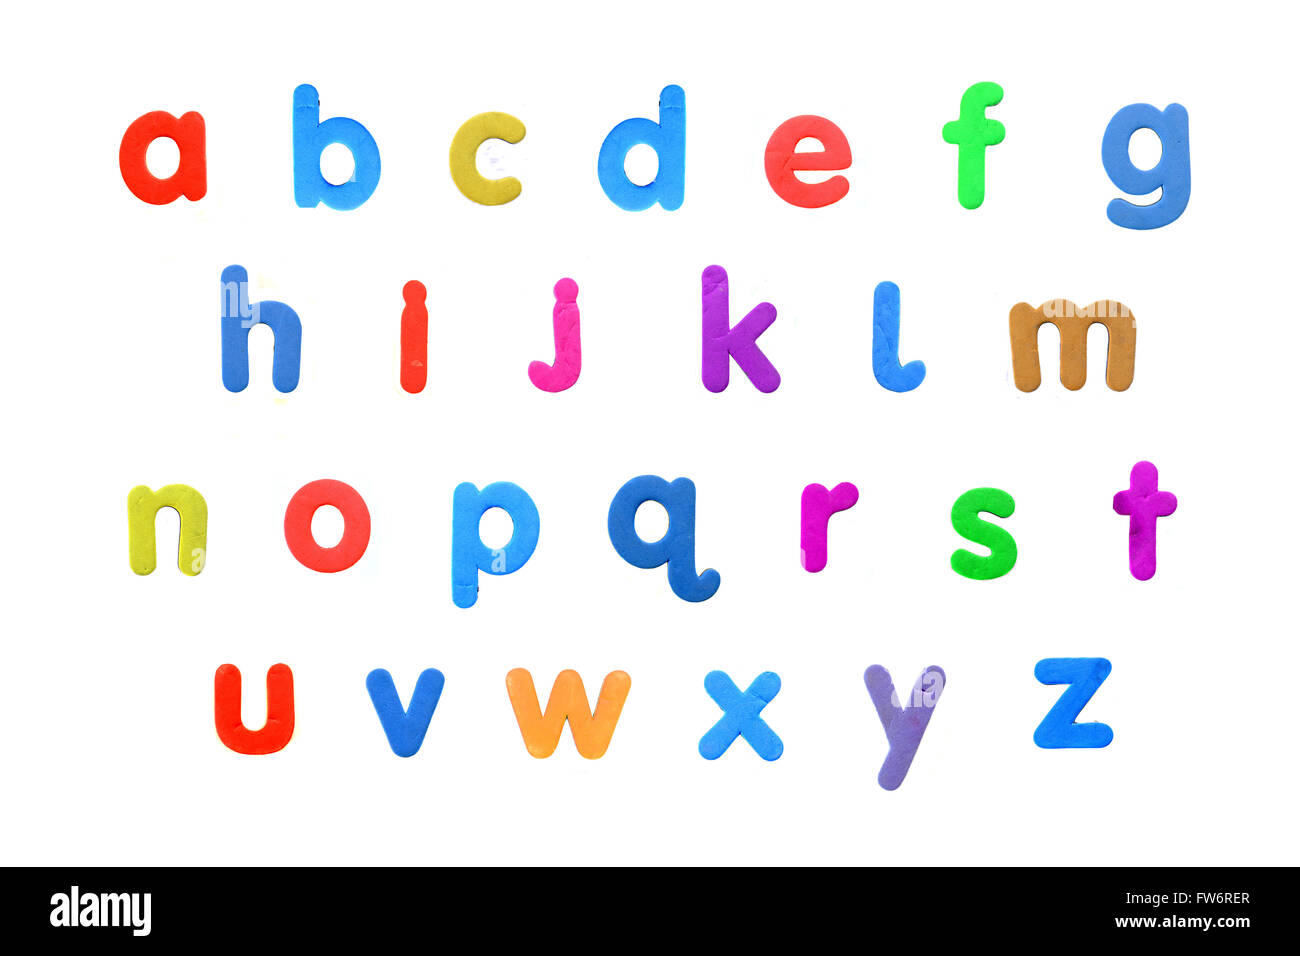 an alphabet created from fridge magnet letters against a white background